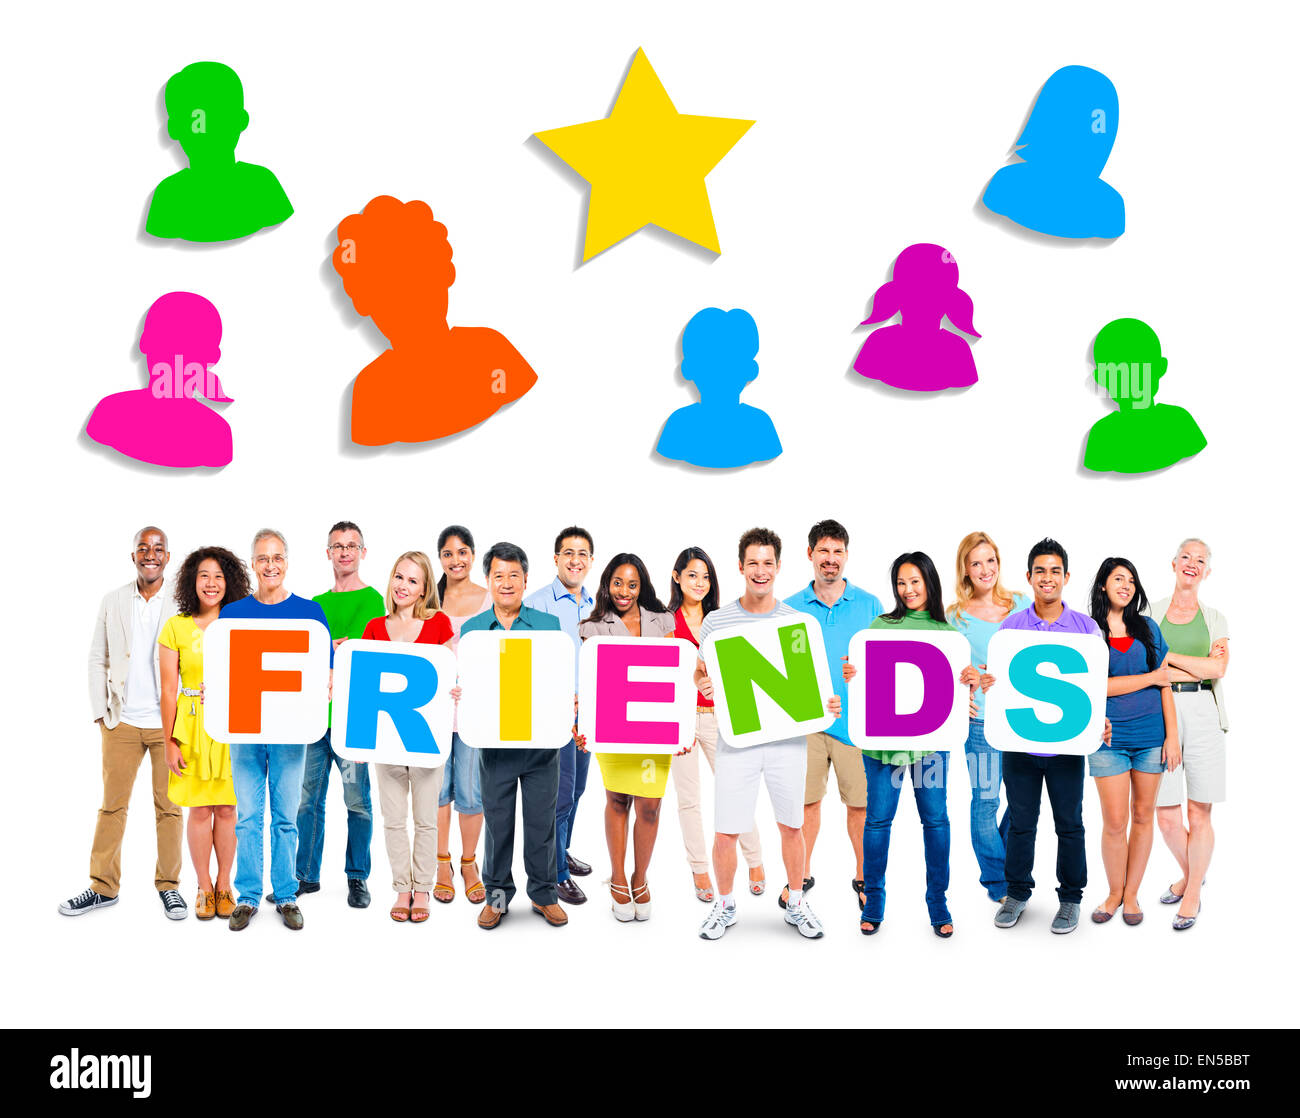 Large group of diverse multi-ethnic people holding white cardboards forming the word 'FRIENDS'. - Stock Image